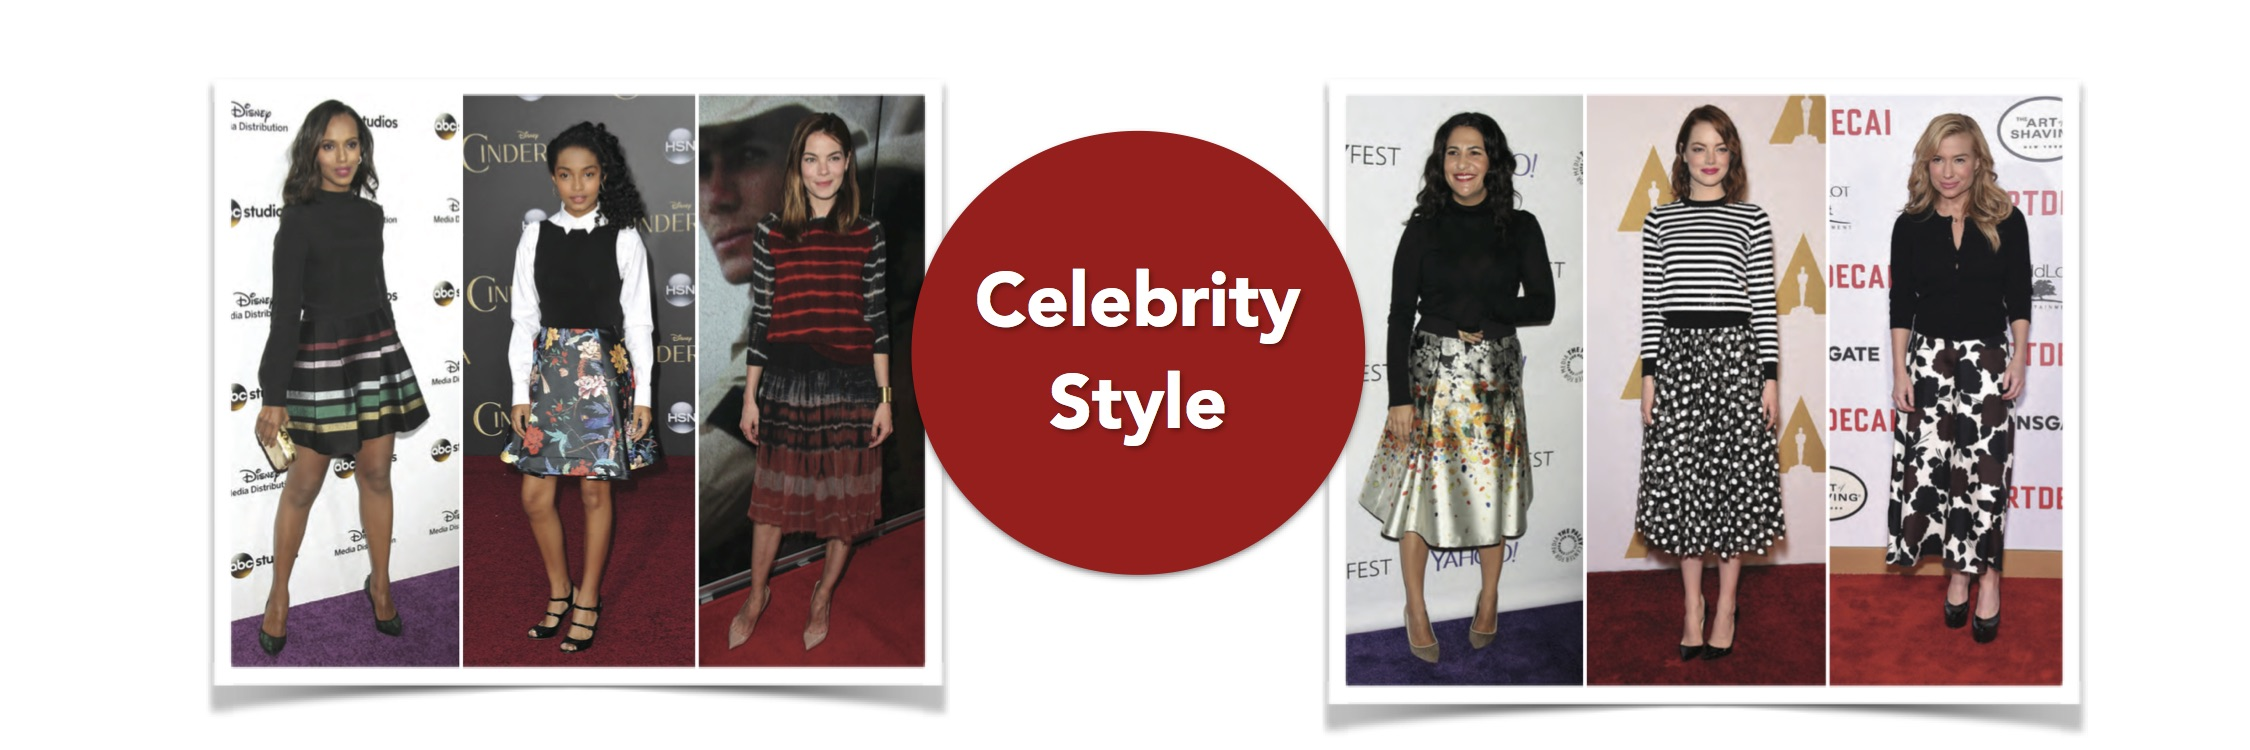 Featured-image-BELLA-Celebrity-Style